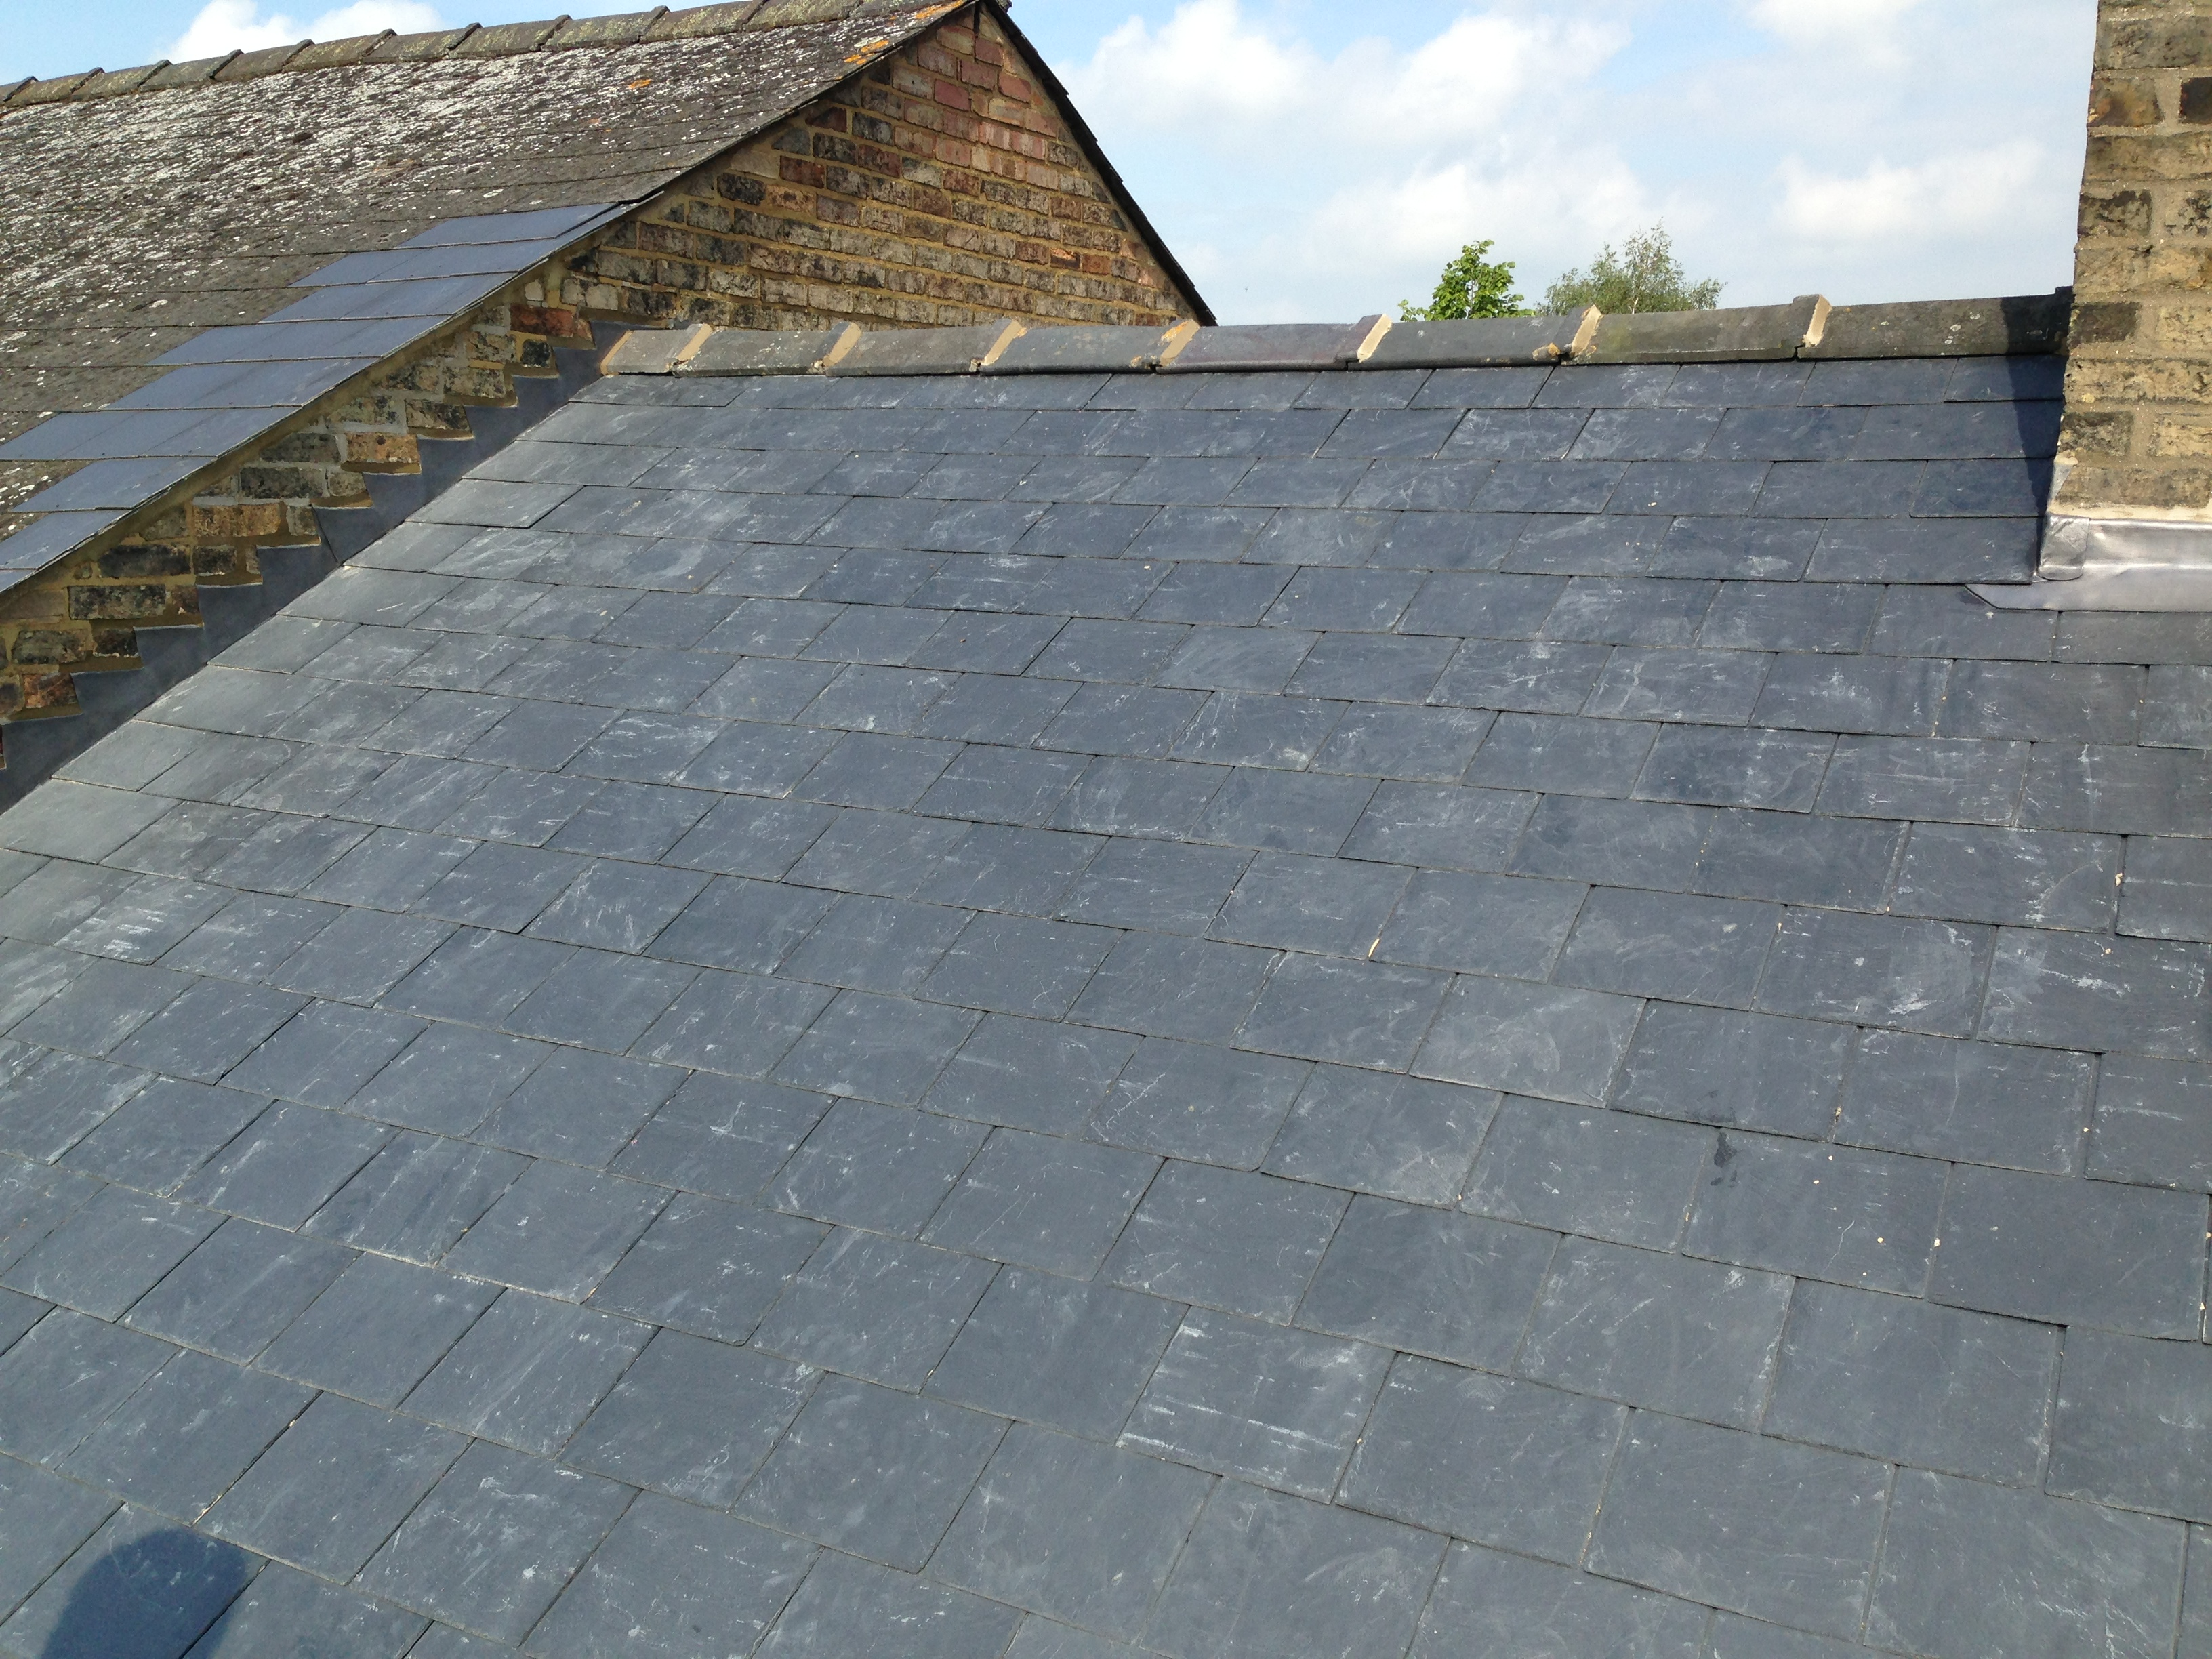 Re-roof with natural Spanish slates